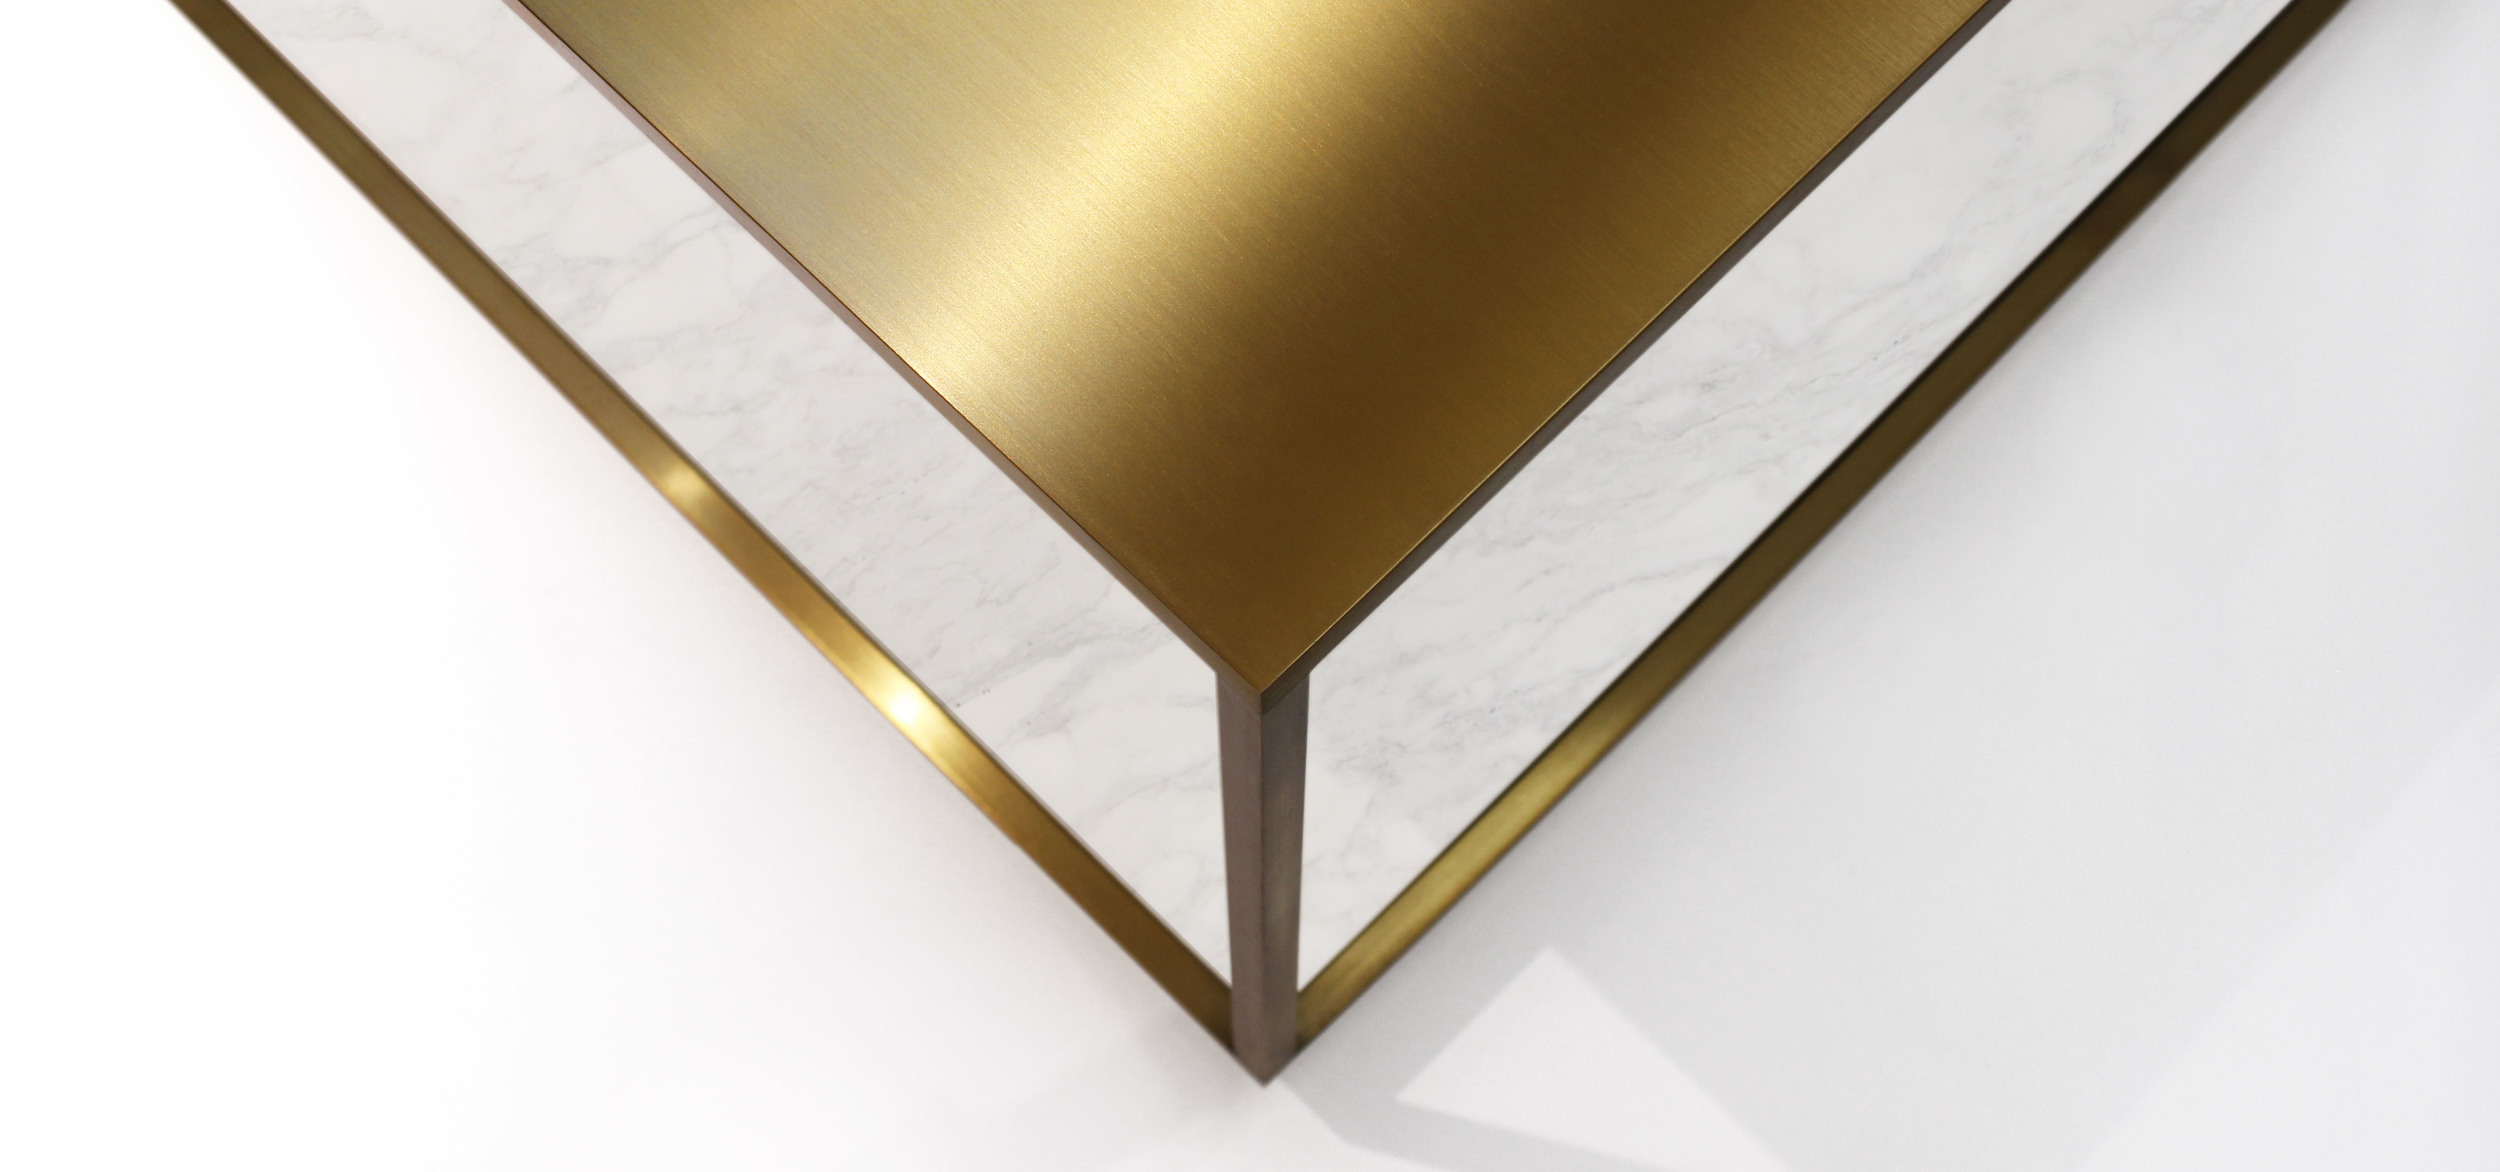 Top view on corner of a table made of marble and brass as a part of a furniture collectiondesigned for Bang & Olufsen's global stores